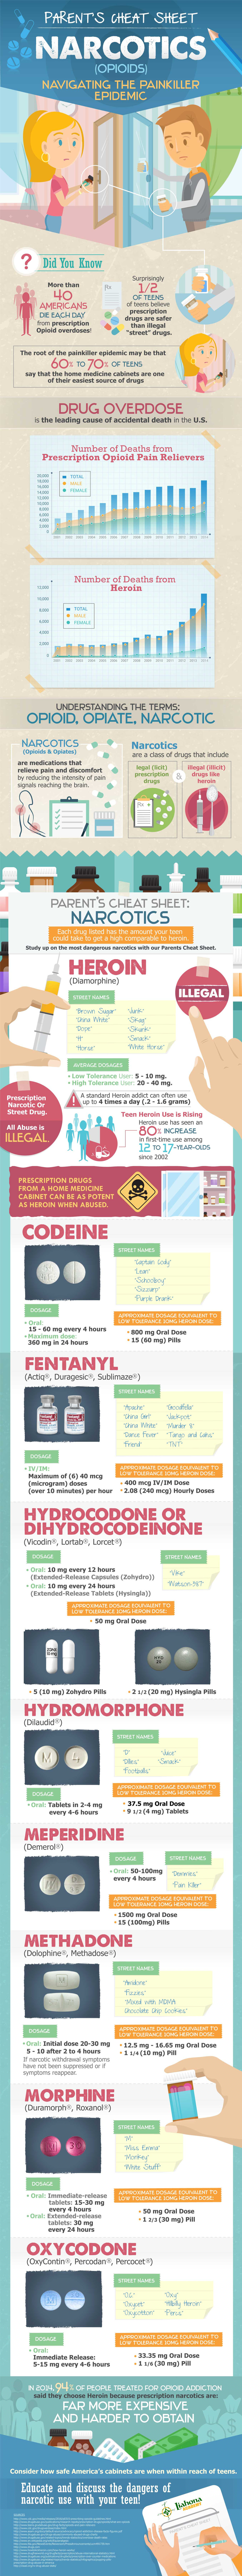 Parents-Cheat-Sheet-Narcotics-(Opioids)-Navigating-The-Painkiller-Epidemic-Infographic